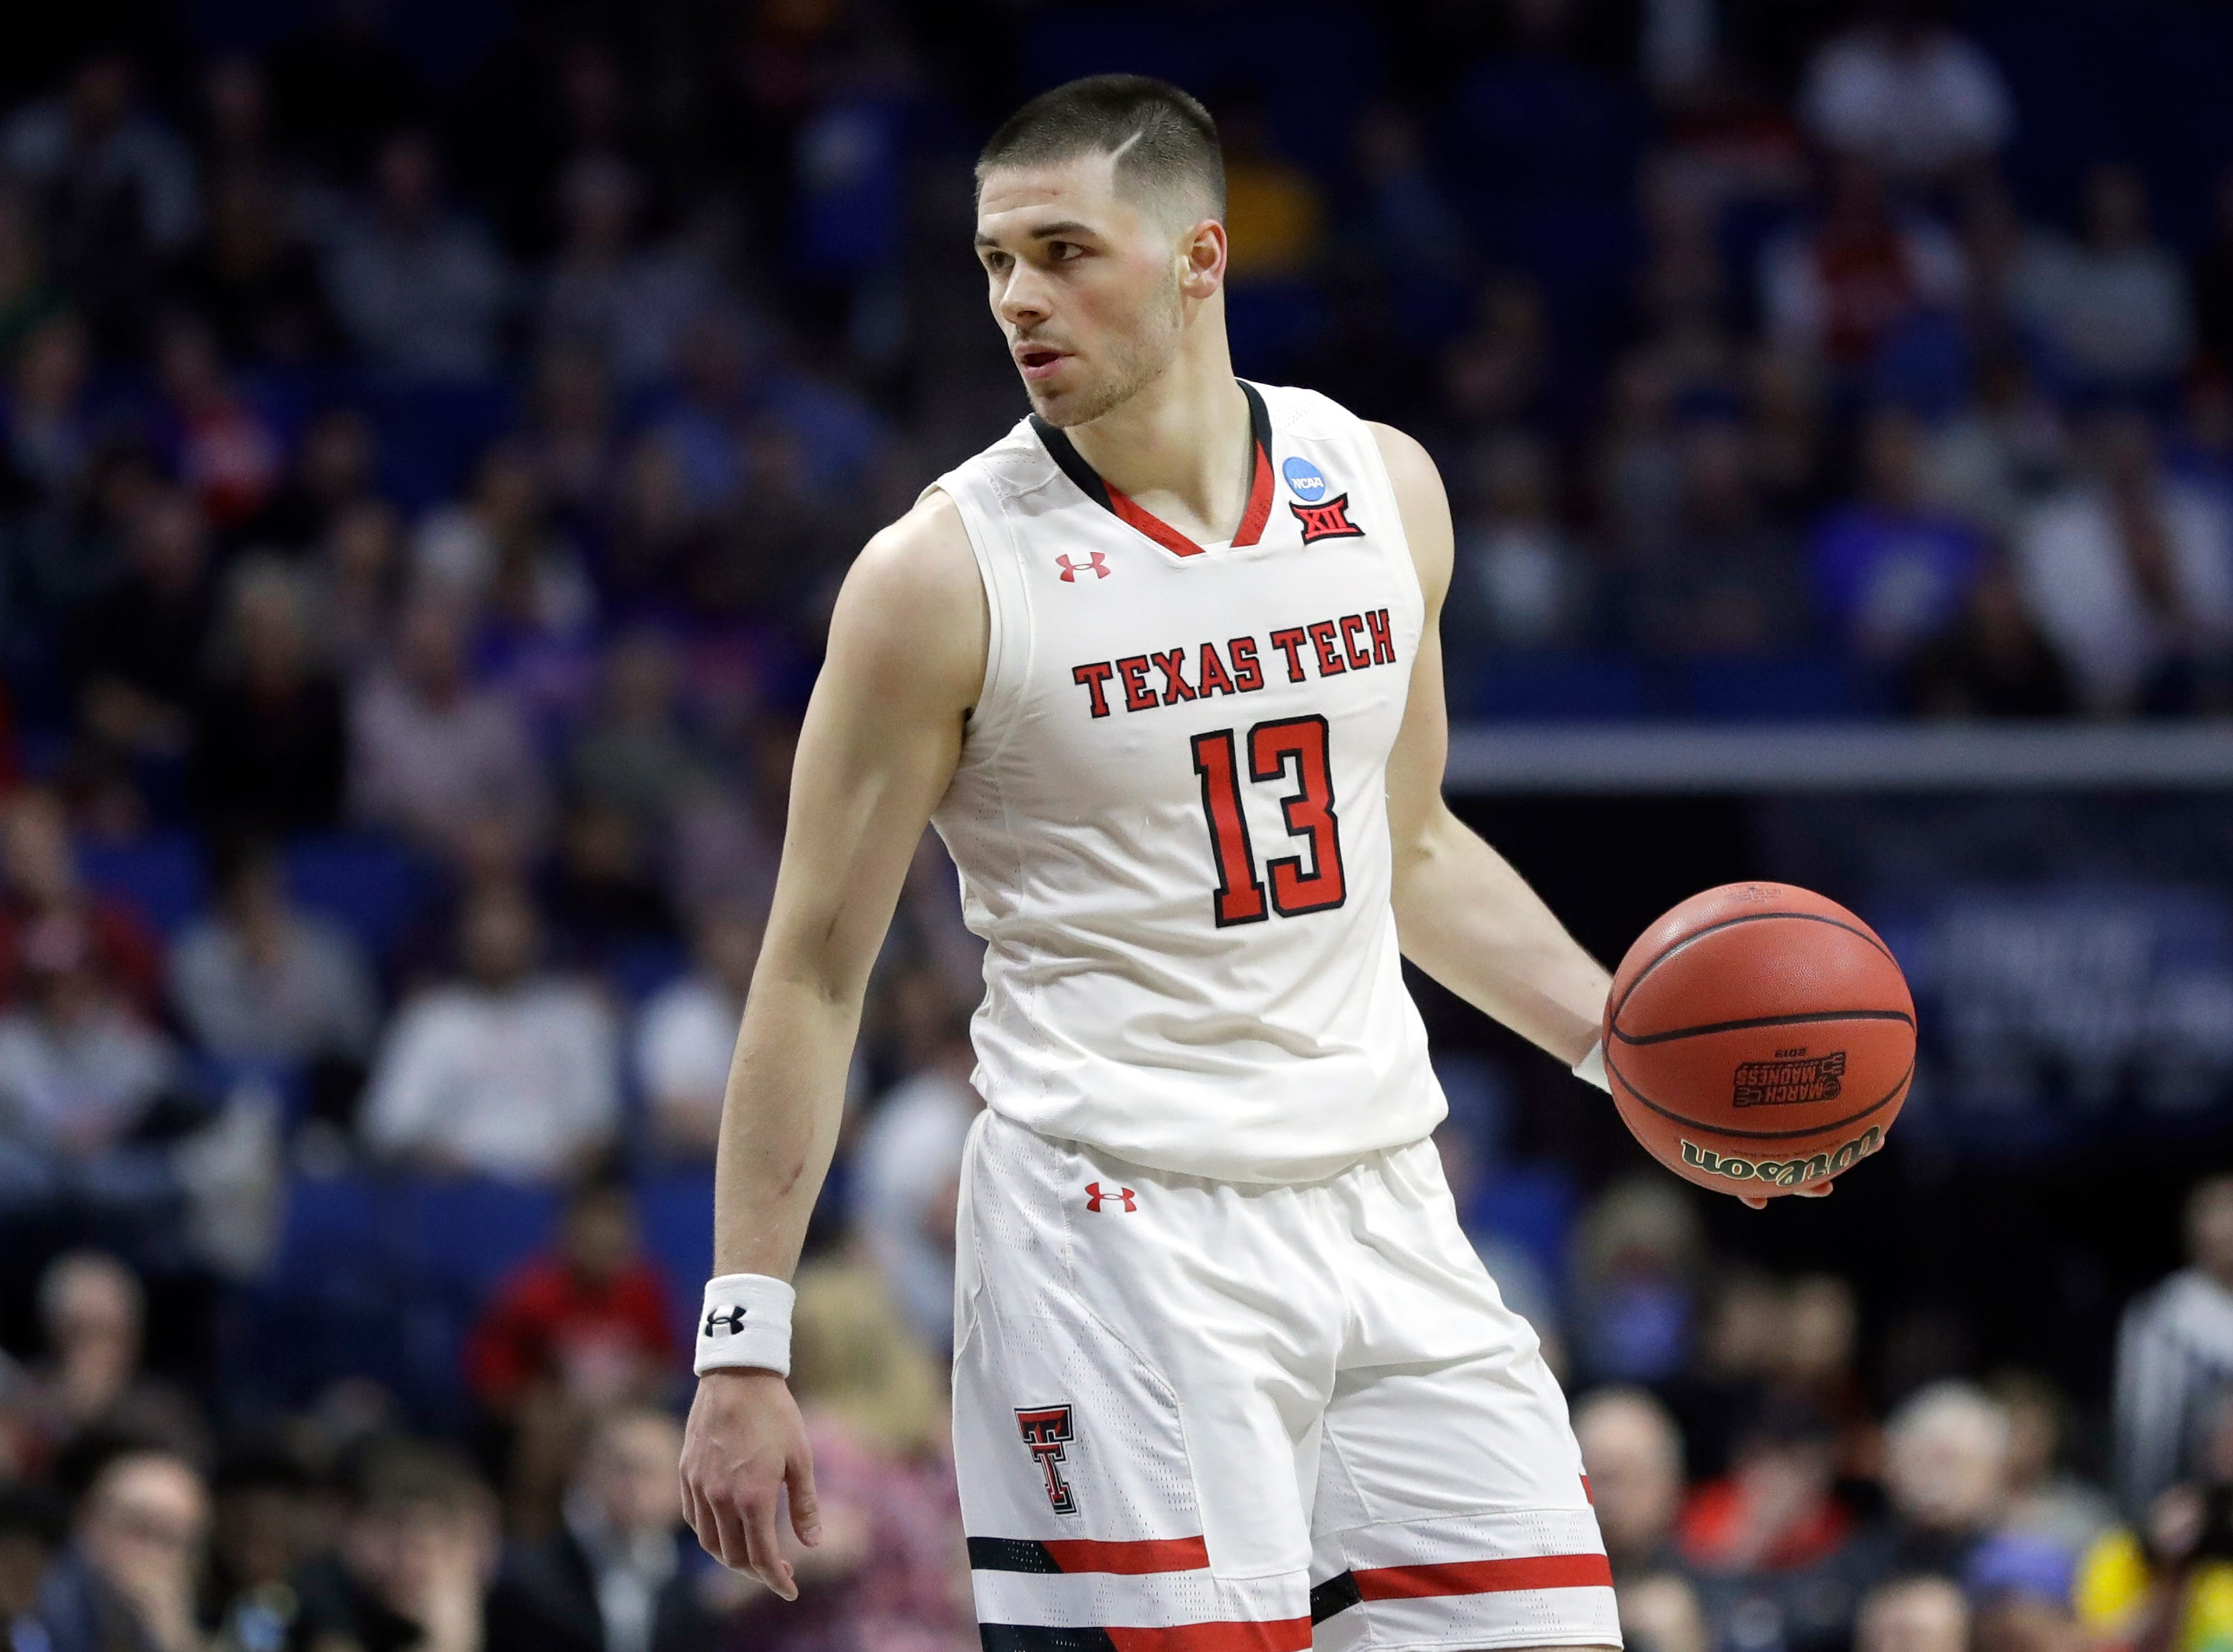 Texas Tech's Matt Mooney brings the ball down the court during the second half of a first round men's college basketball game against Northern Kentucky in the NCAA Tournament Friday, March 22, 2019, in Tulsa, Okla. Texas Tech won 72-57. (AP Photo/Jeff Roberson)